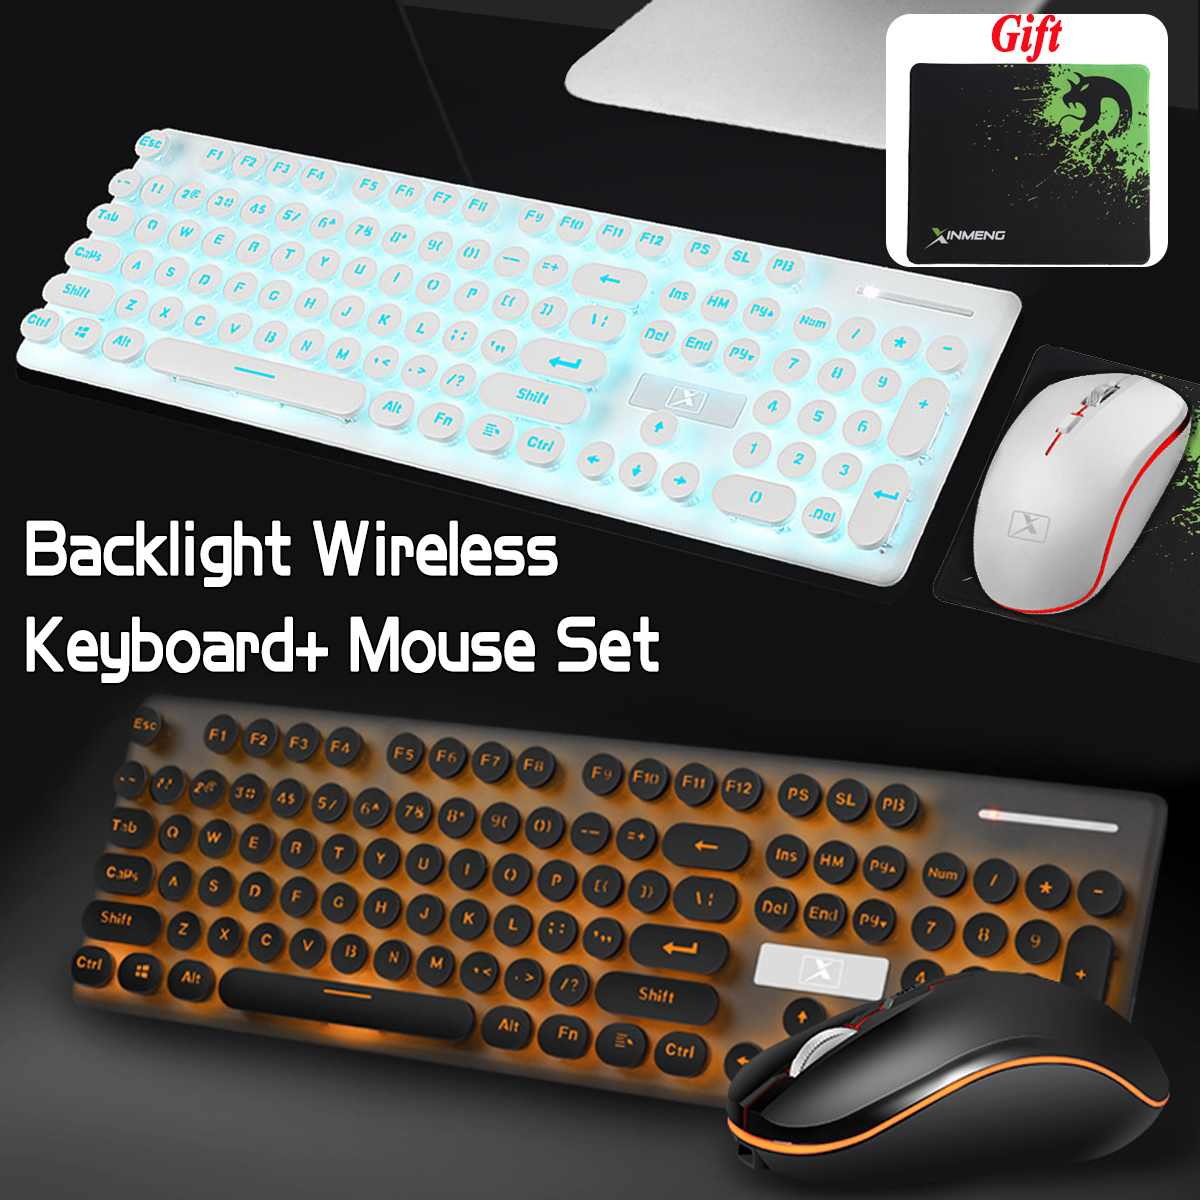 Multimedia 2.4G Wireless Keyboard Mouse Combos Rechargeable Mute LED Backlit Gaming Keyboard Mouse Pad Set